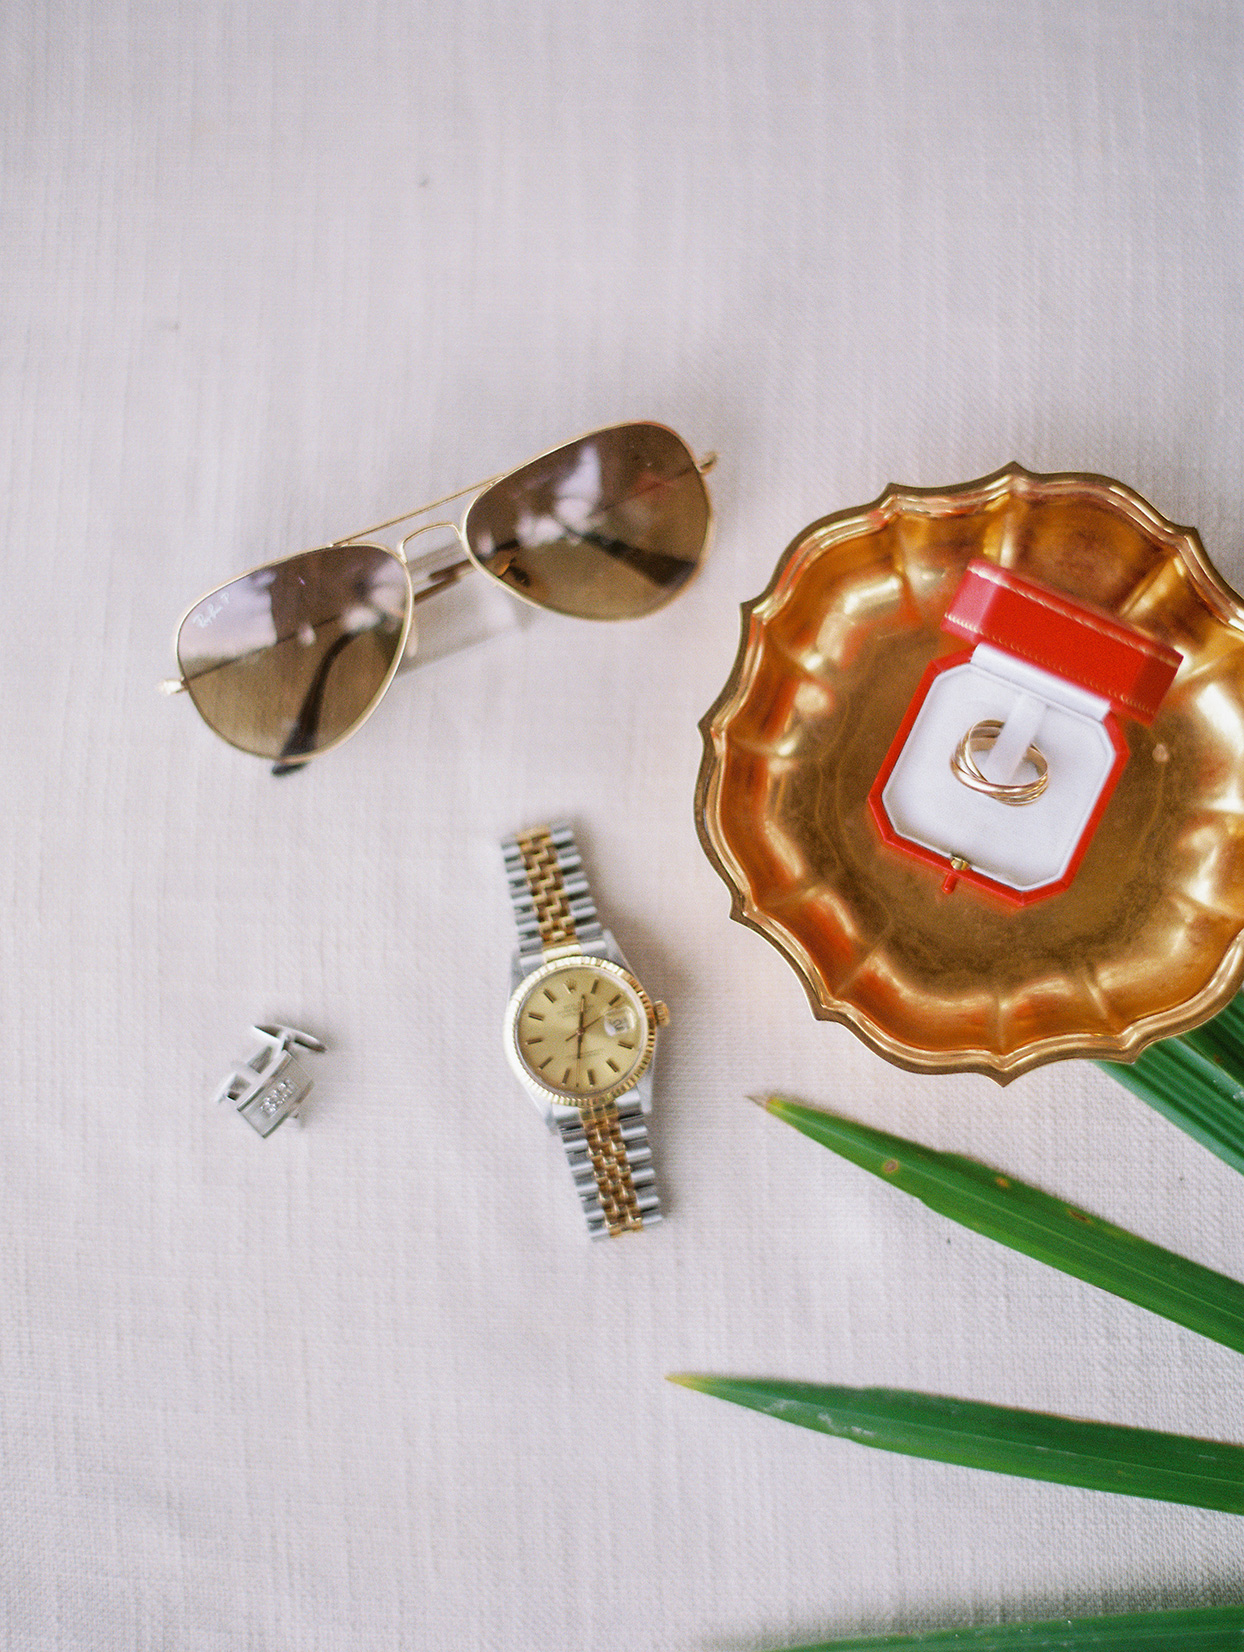 groom accessories watch, cufflinks, ring and sunglasses